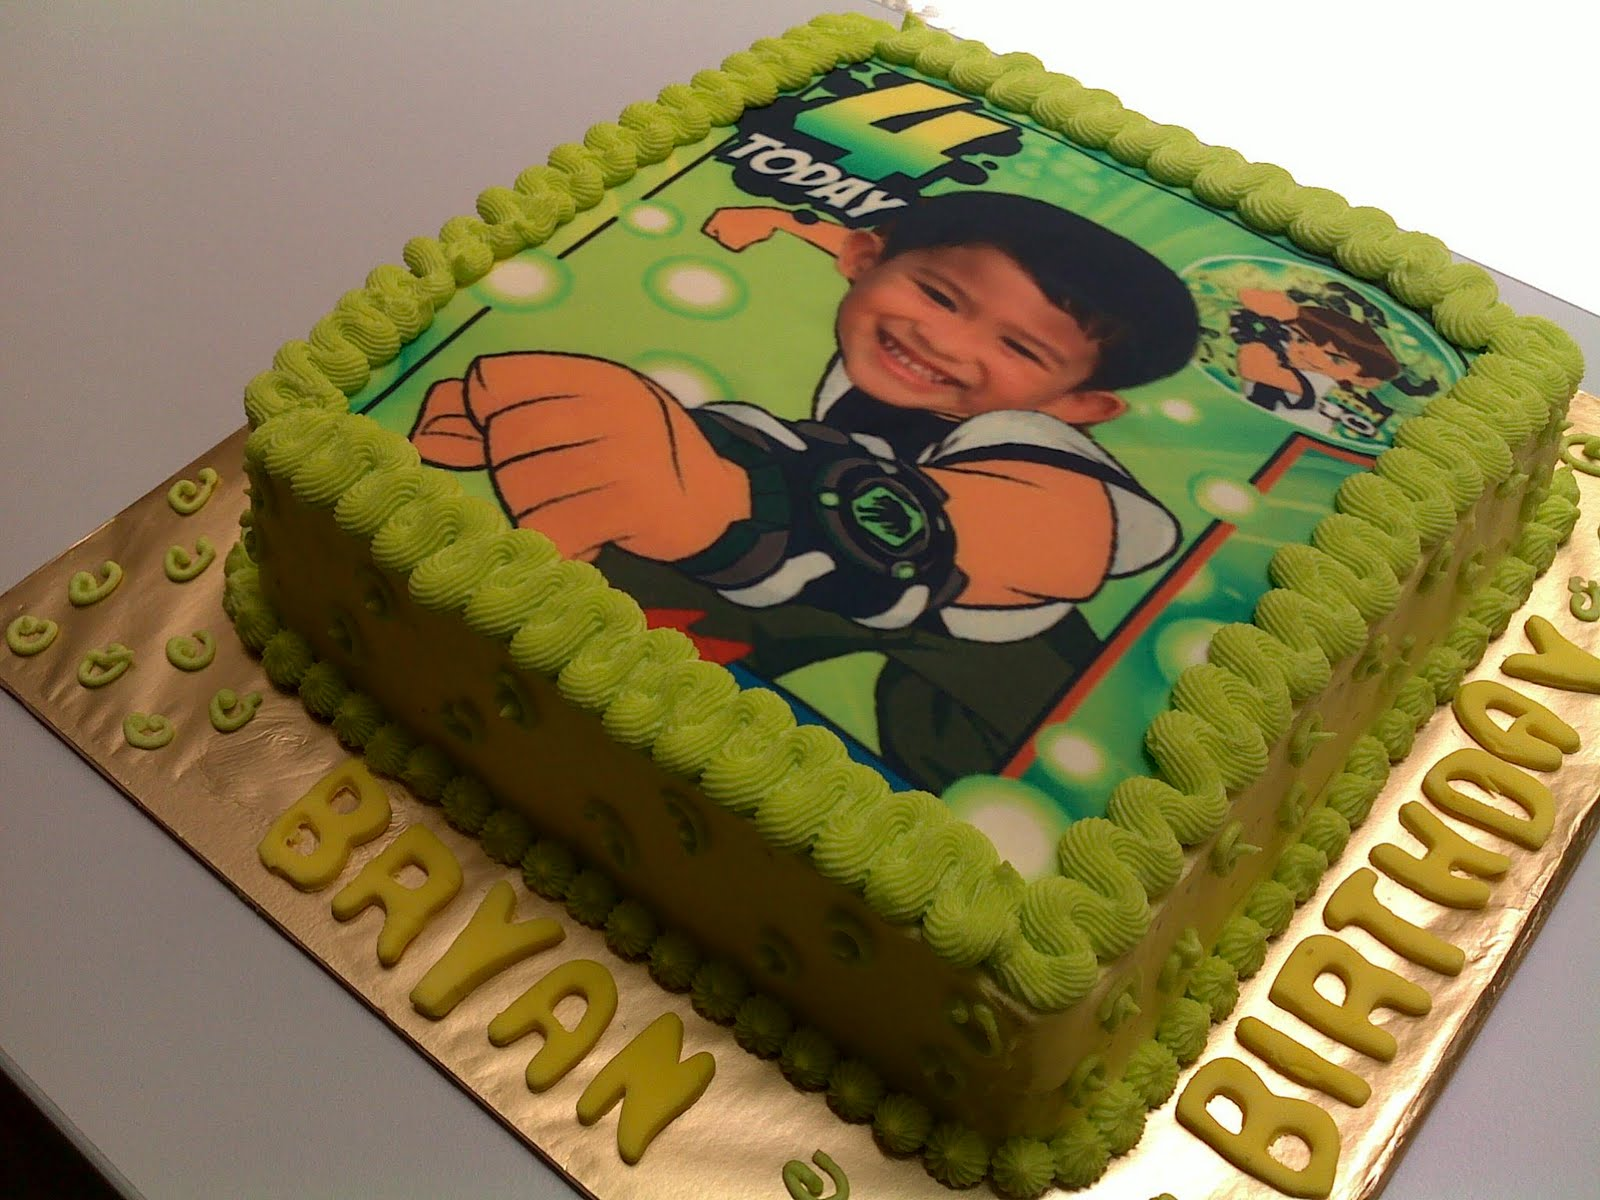 Family Firsts Confections Ben 10 Cake